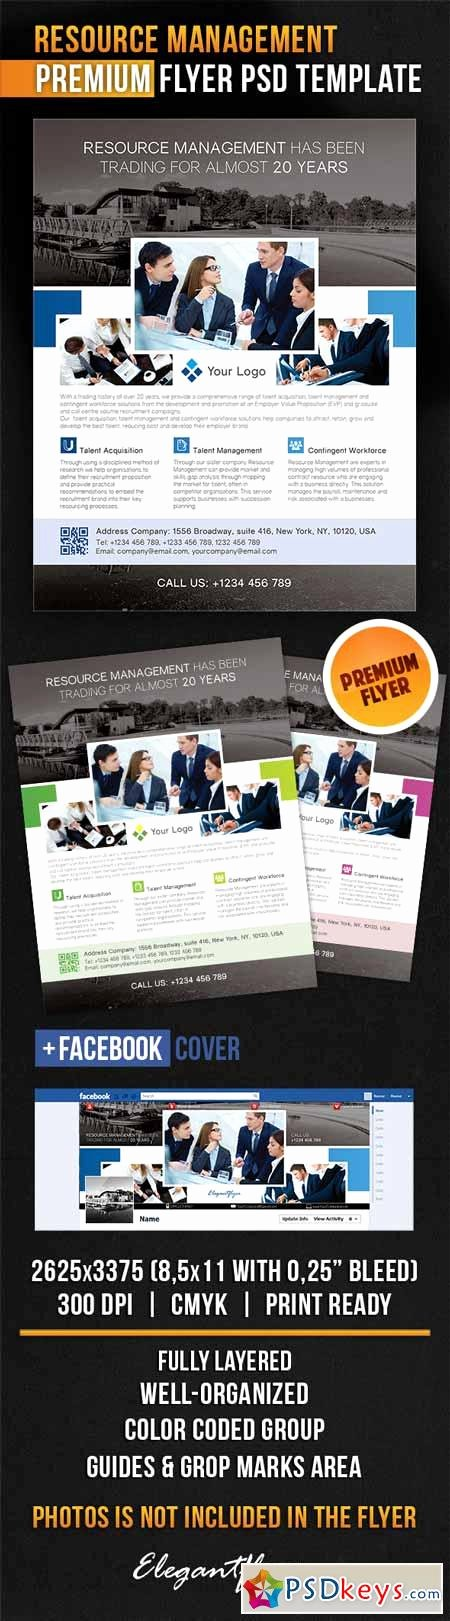 Facebook Cover Template Psd Luxury Resource Management – Flyer Psd Template Cover